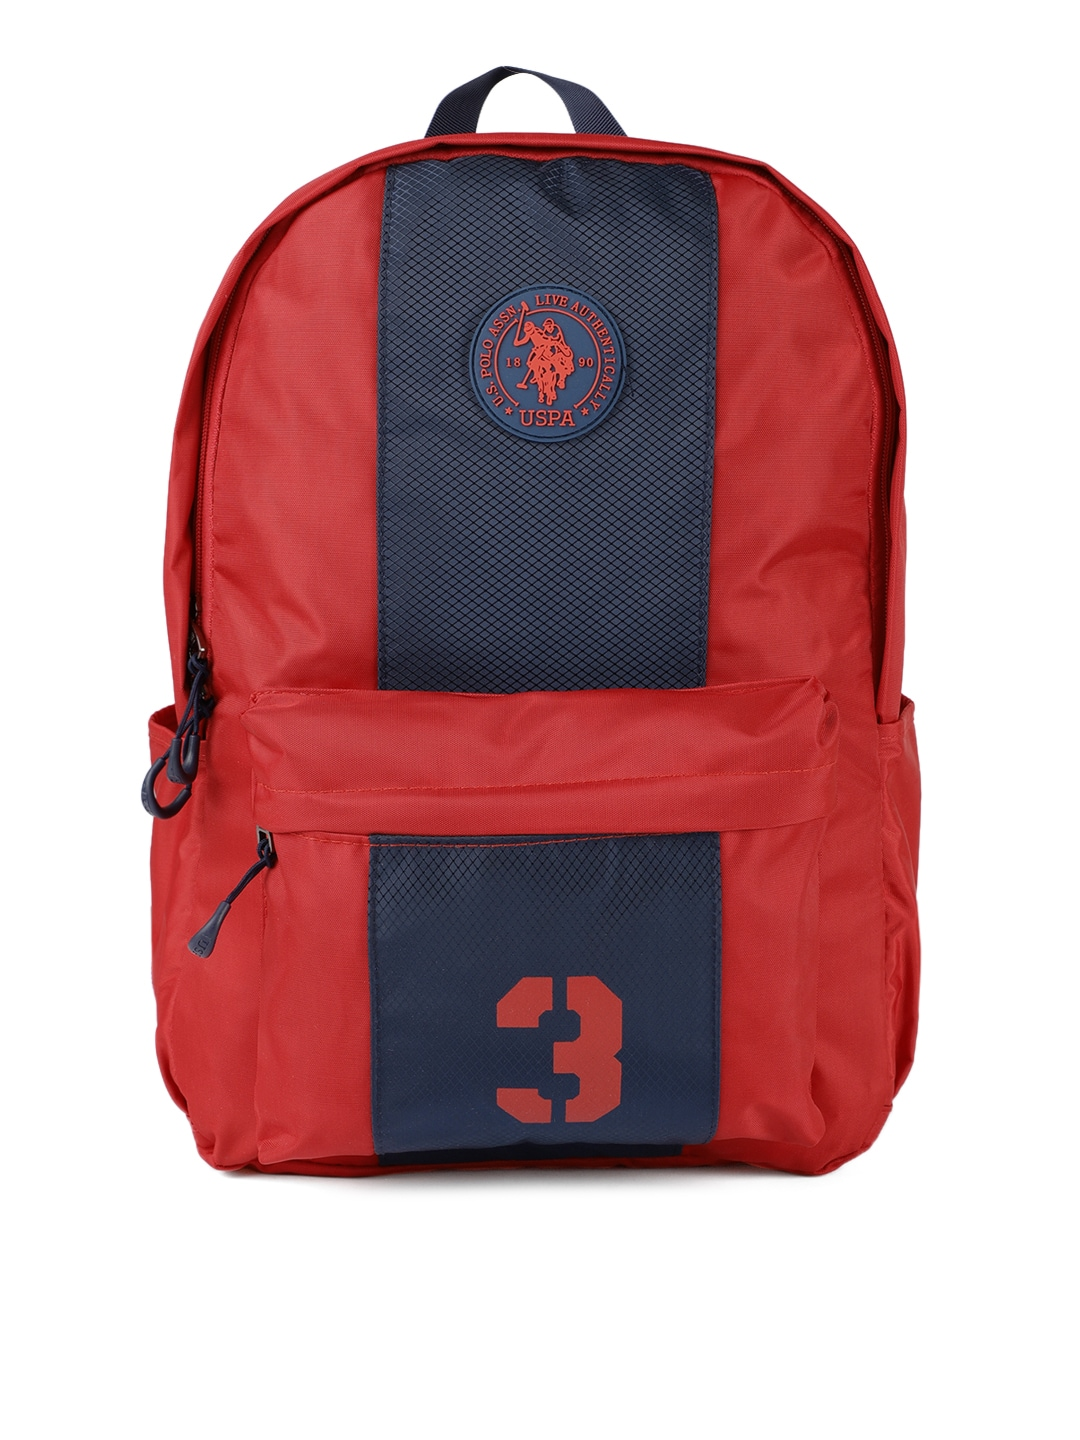 5cfb1ad0e7 US Polo Assn Backpacks - Buy US Polo Assn Backpacks Online in India